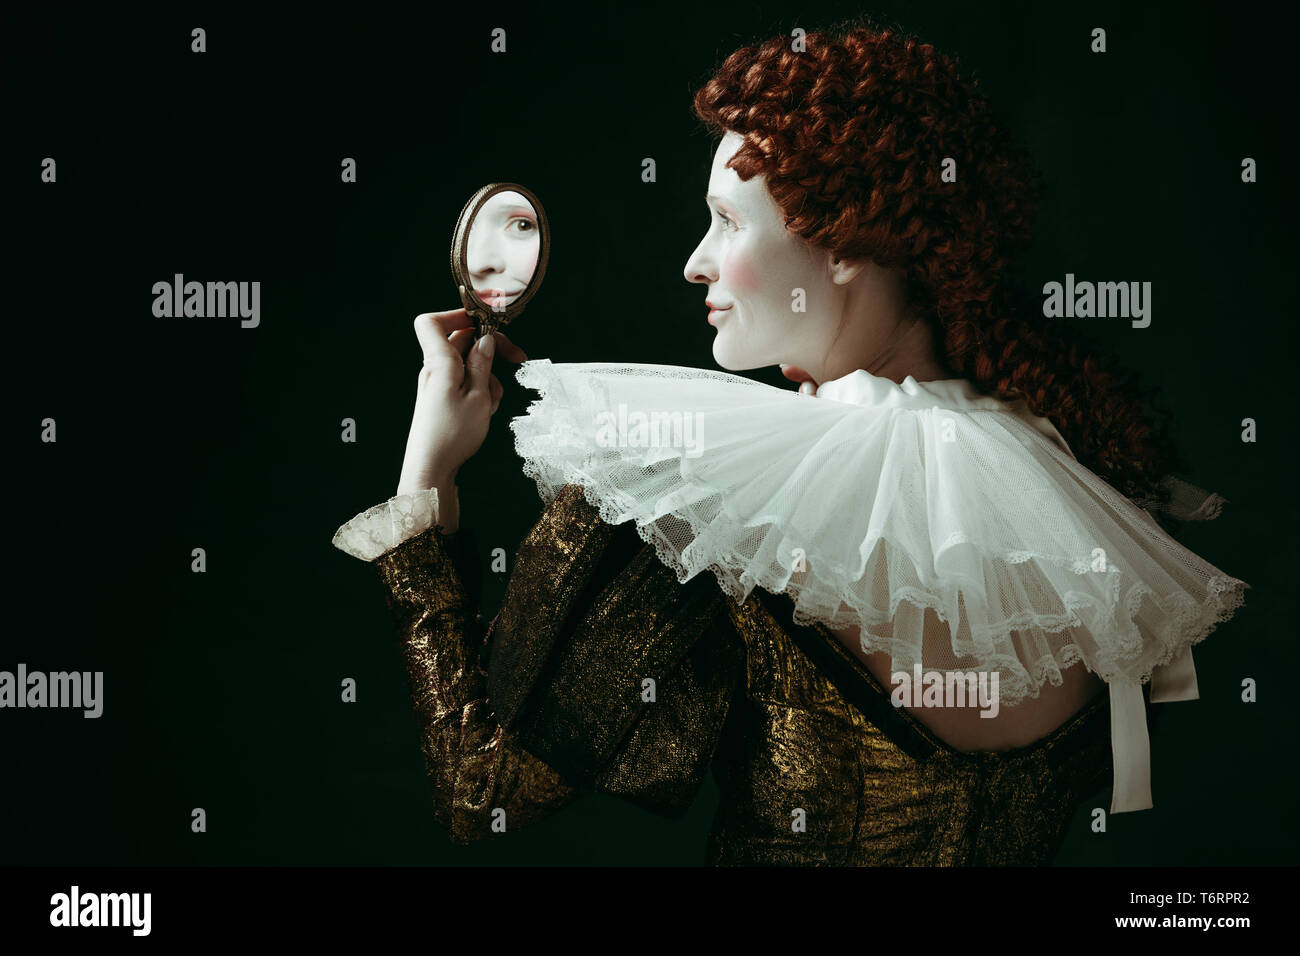 e62151ec8db Who s that pretty. Medieval redhead young woman in golden vintage clothing  as a duchess looking